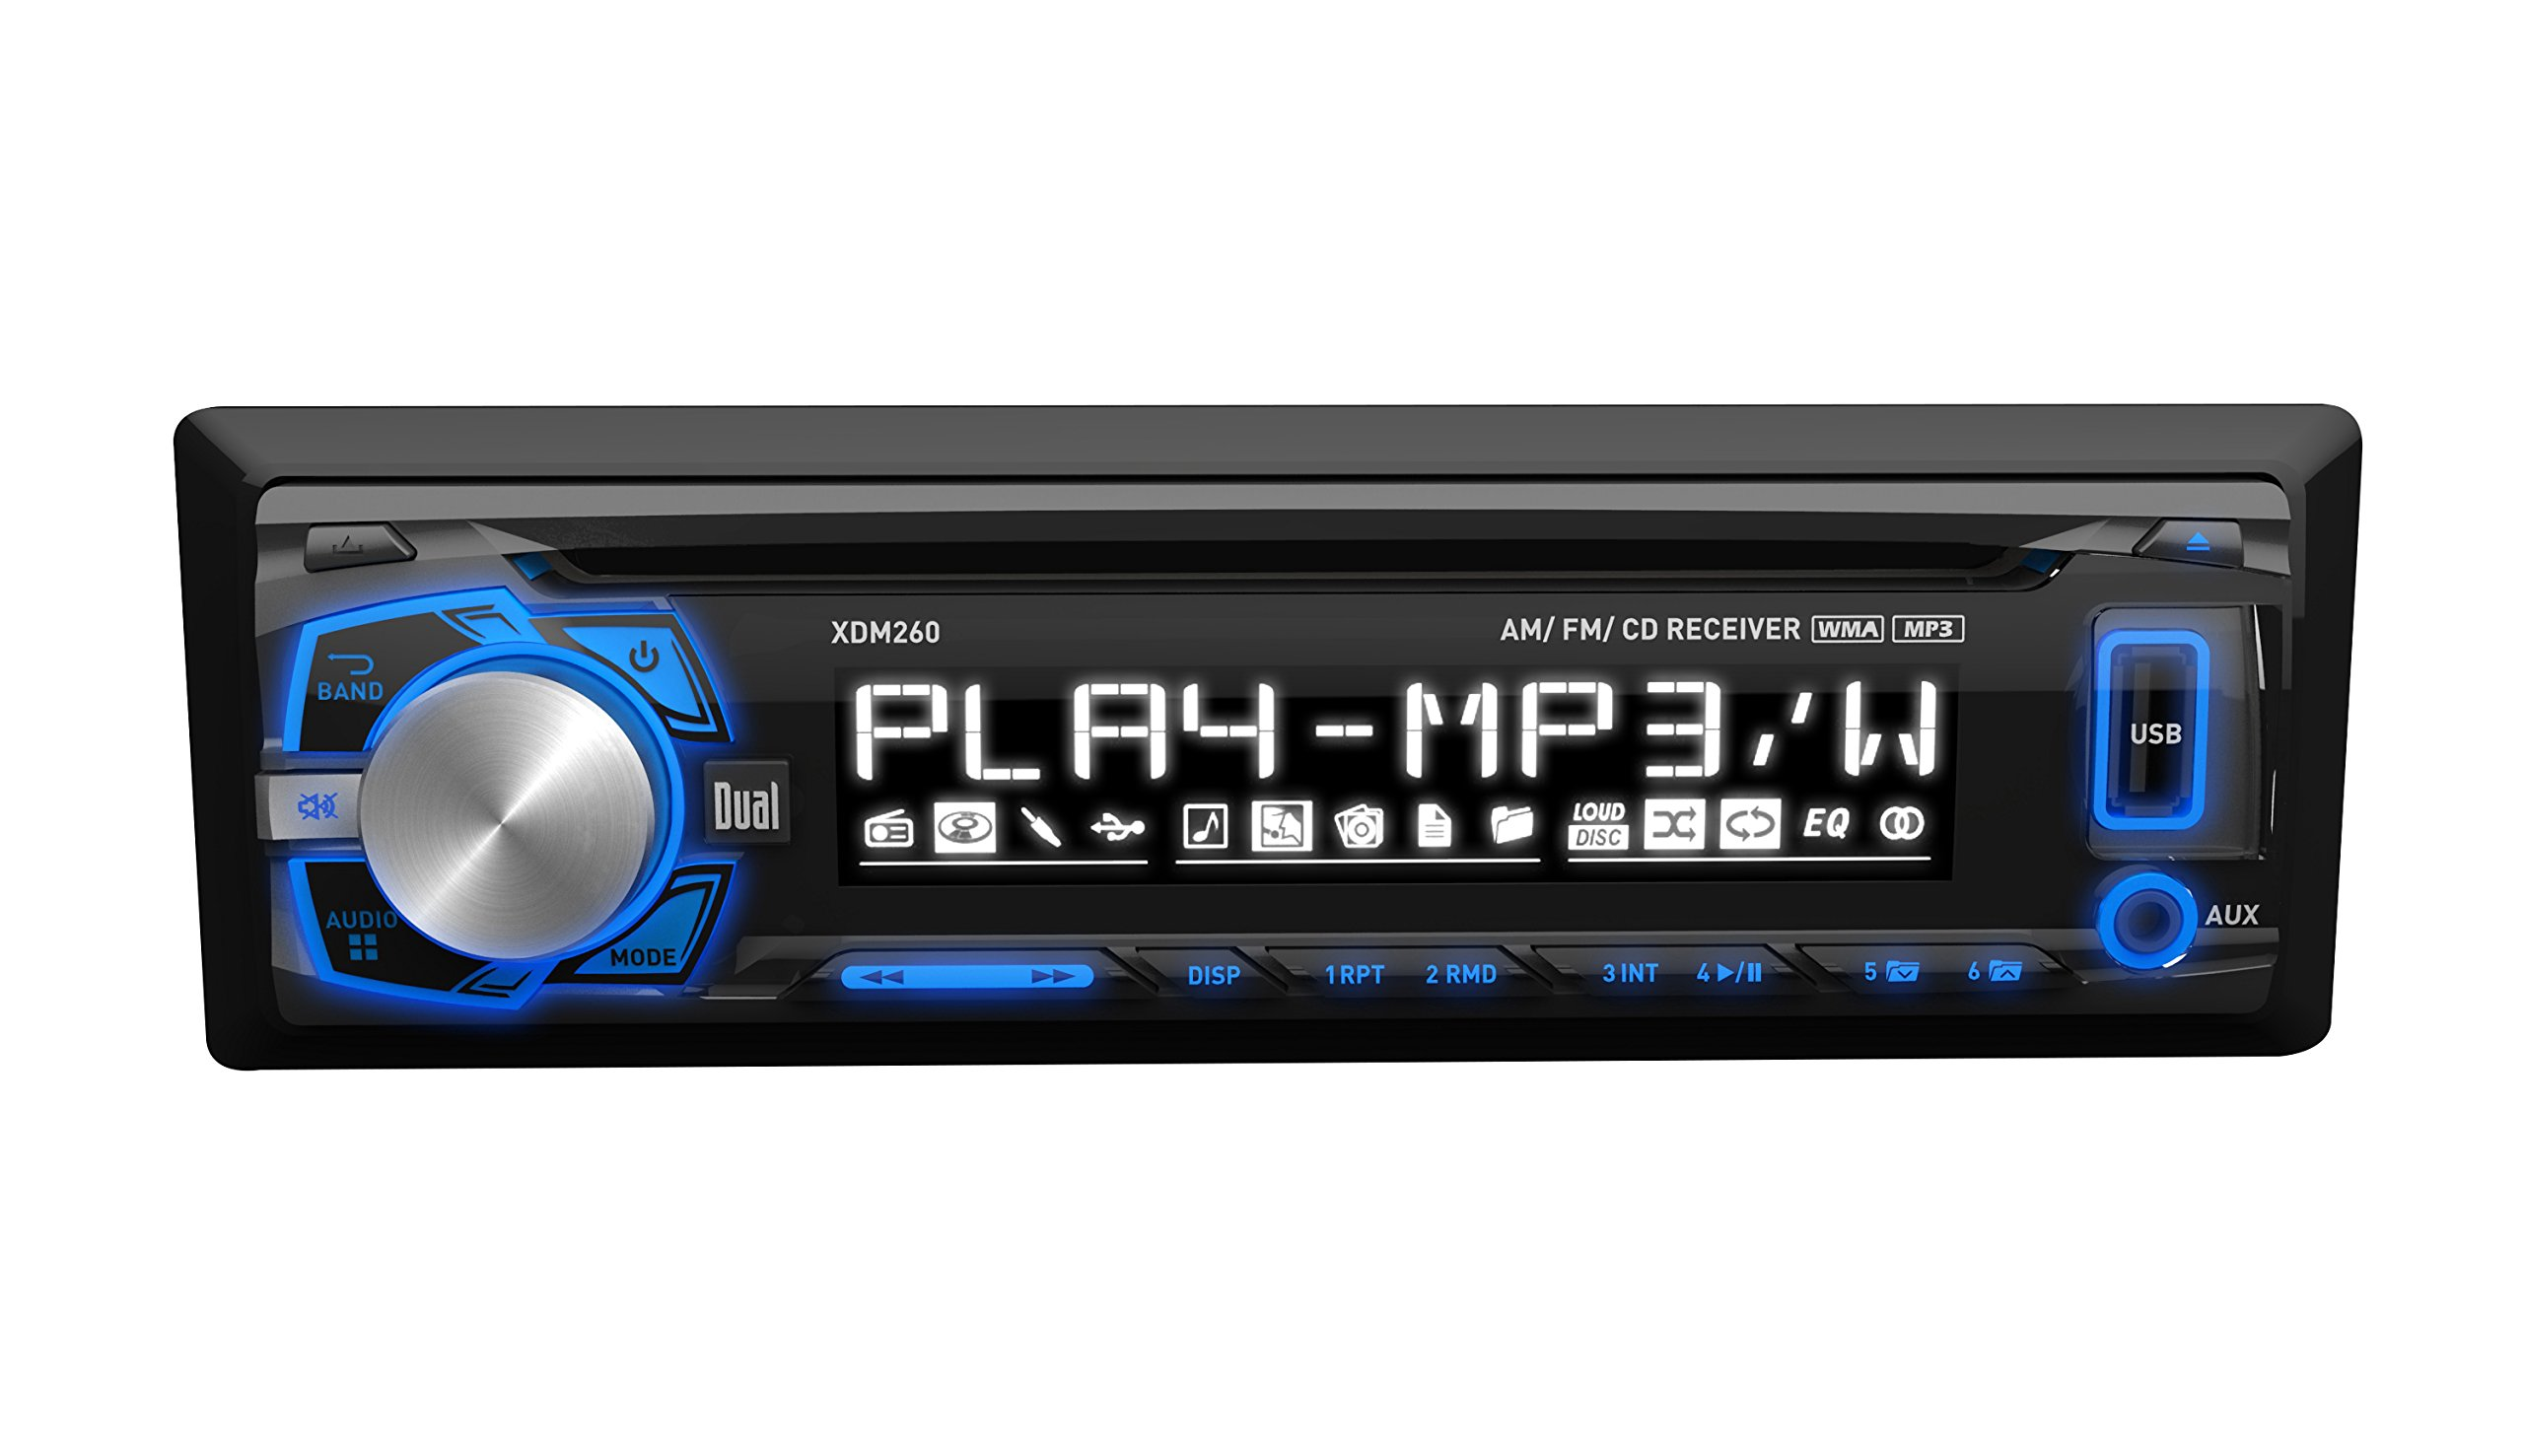 Dual Electronics XDM260 Multimedia Detachable 3.7 inch LCD Single DIN Car Stereo with Built-In CD, USB, MP3 & WMA Player